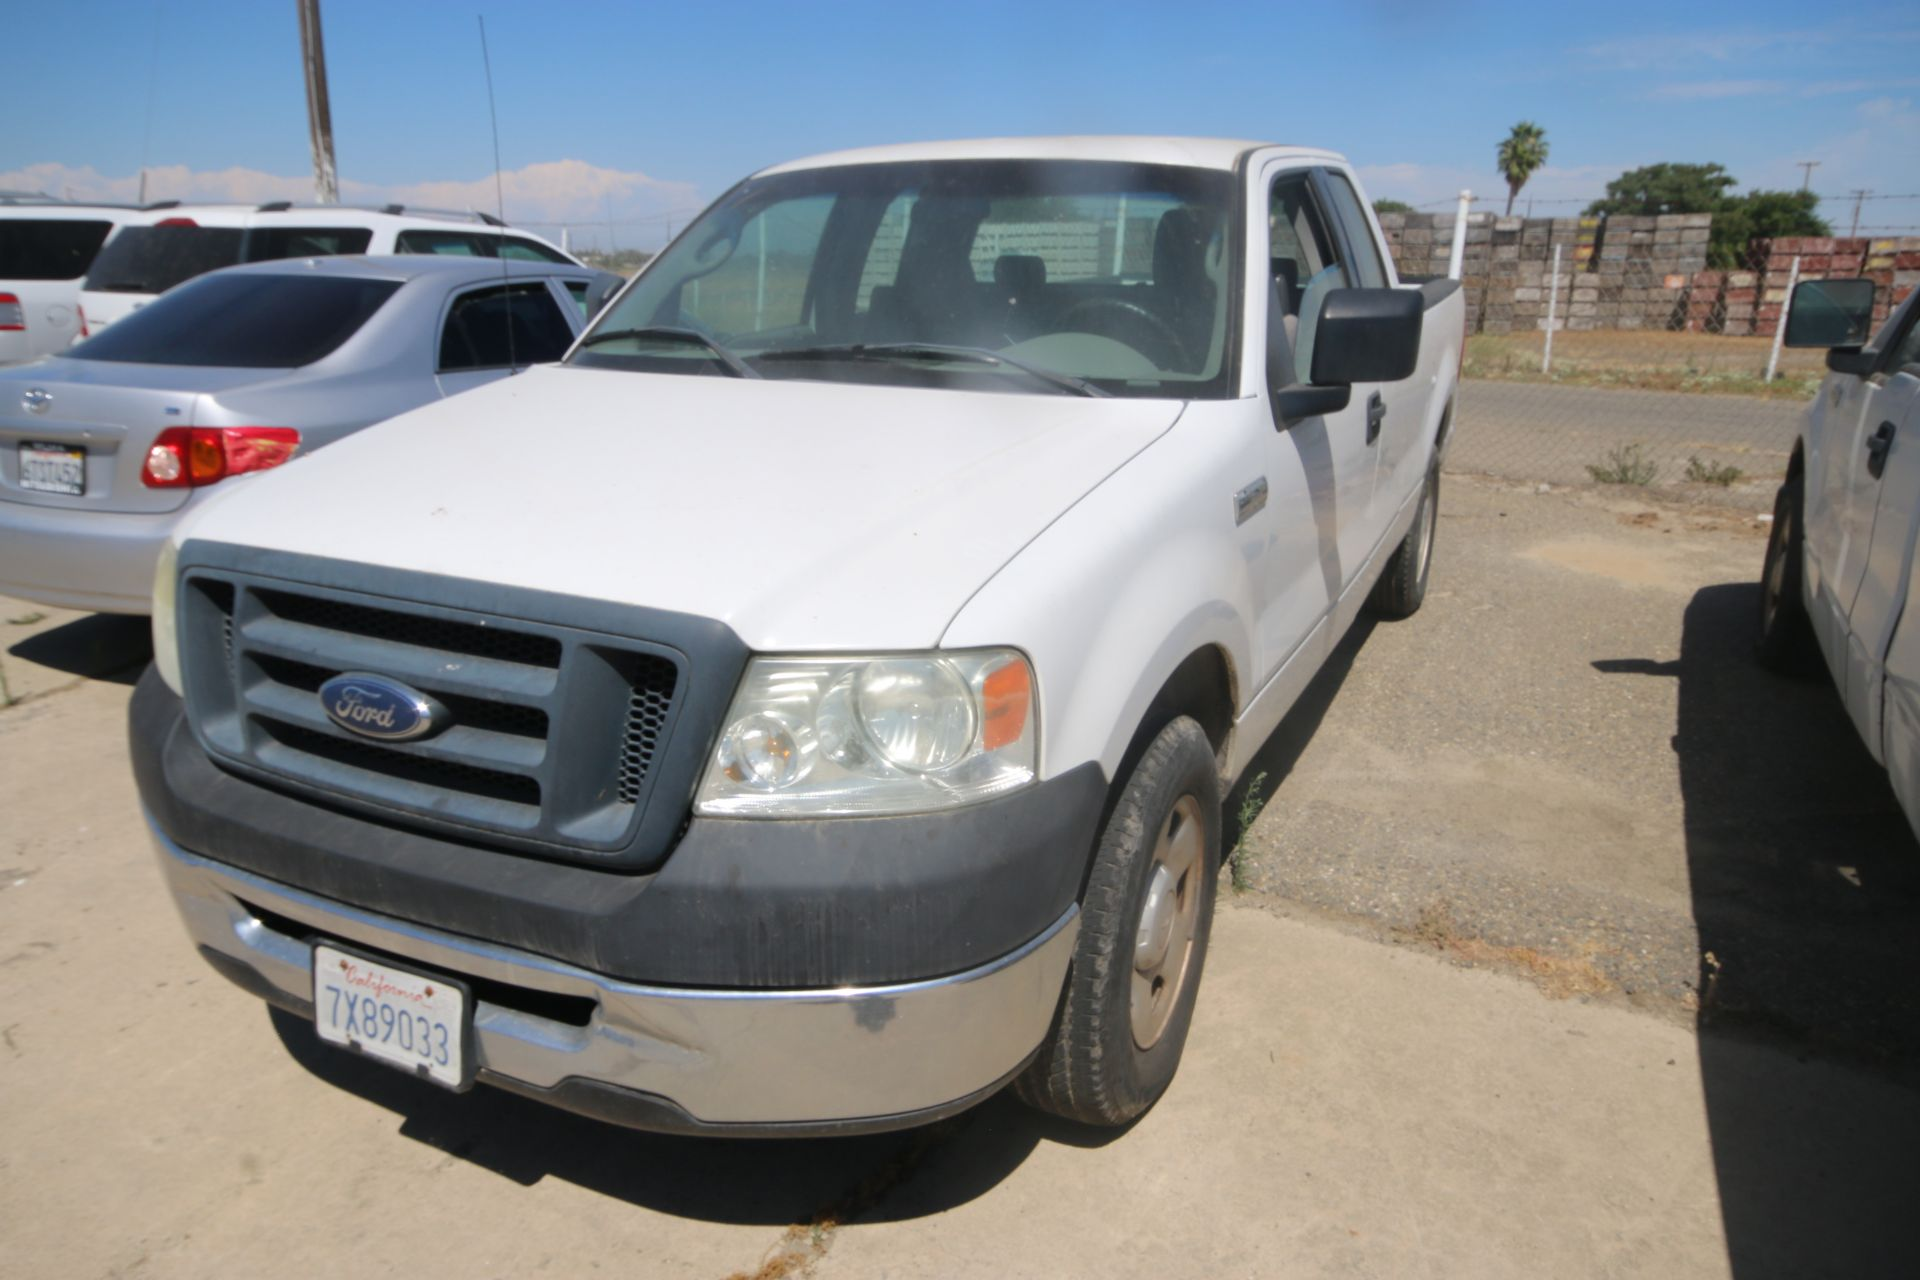 2006 Ford F150 S/C Pick Up Truck, VIN #: 1FTRX12W46FA38458, with 233,106 Miles, Started Up as of